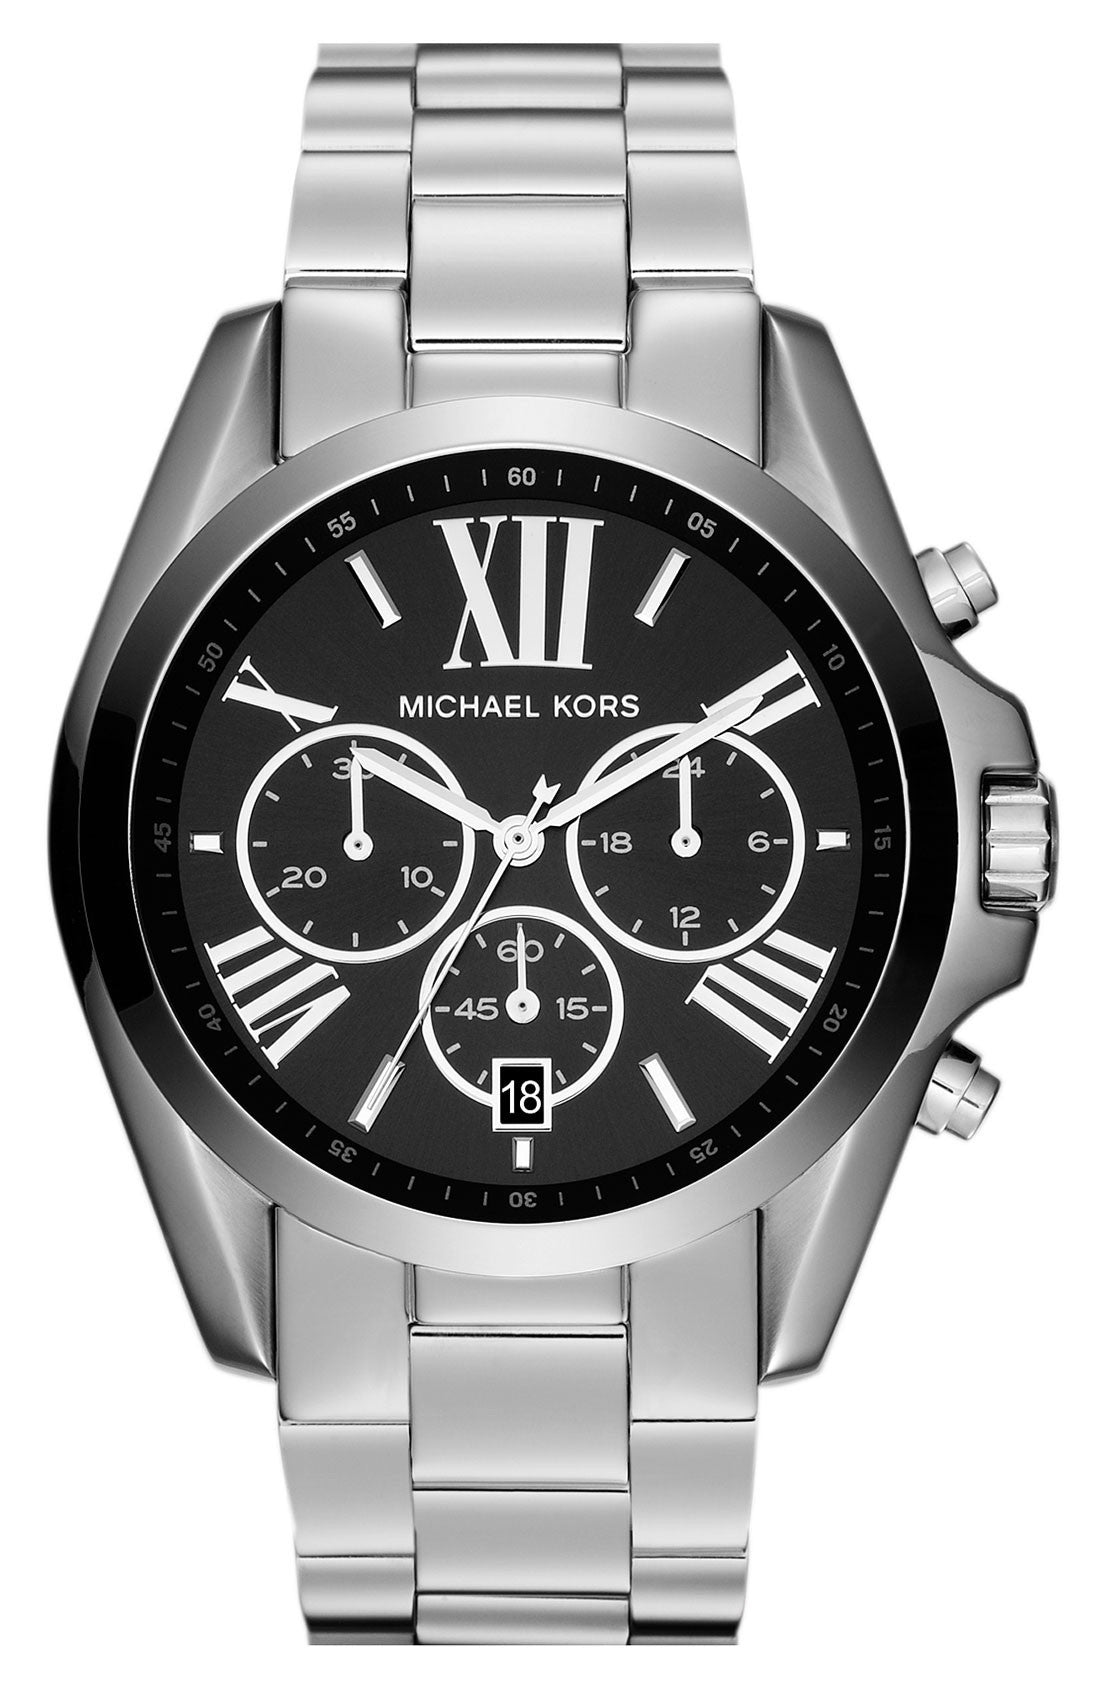 Michael Kors Watch MK5705